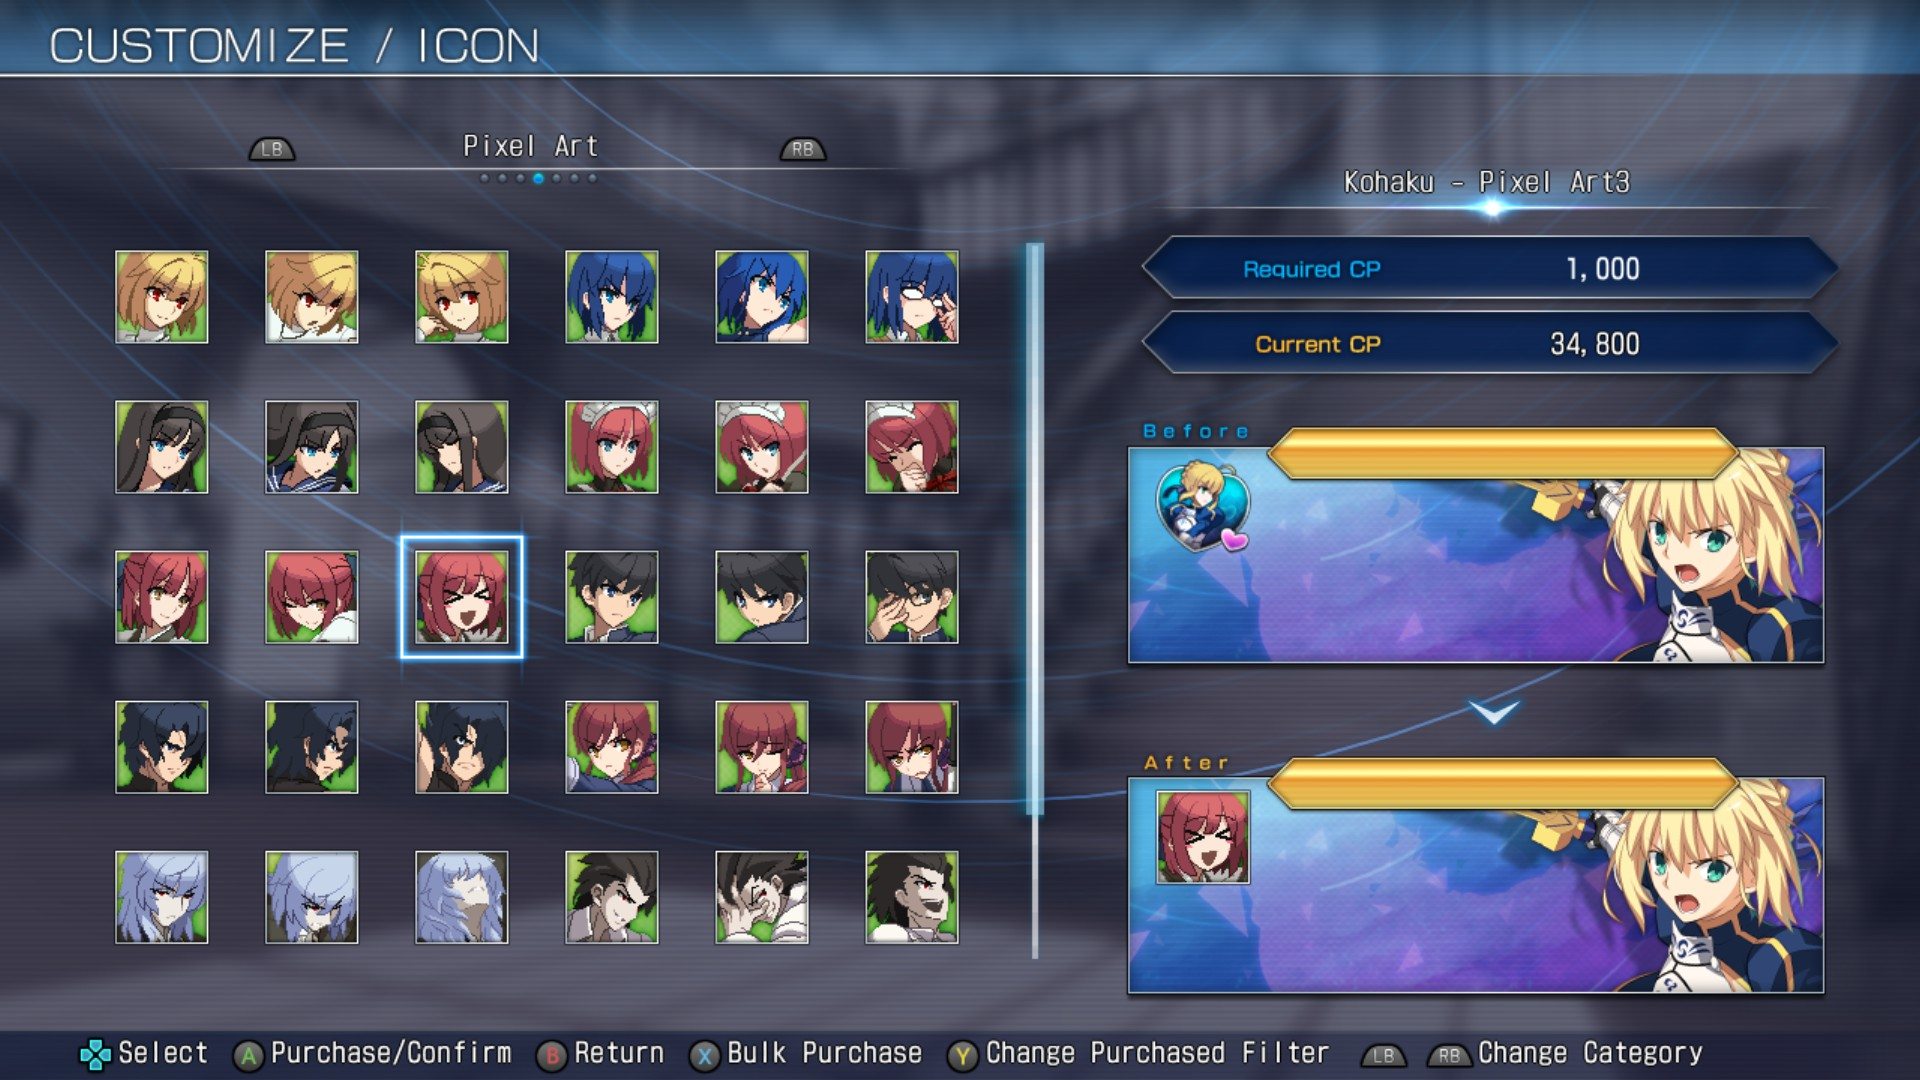 MELTY BLOOD: TYPE LUMINA WIP - All Achievements Guide & Walkthrough - Customize - 9DB44AD